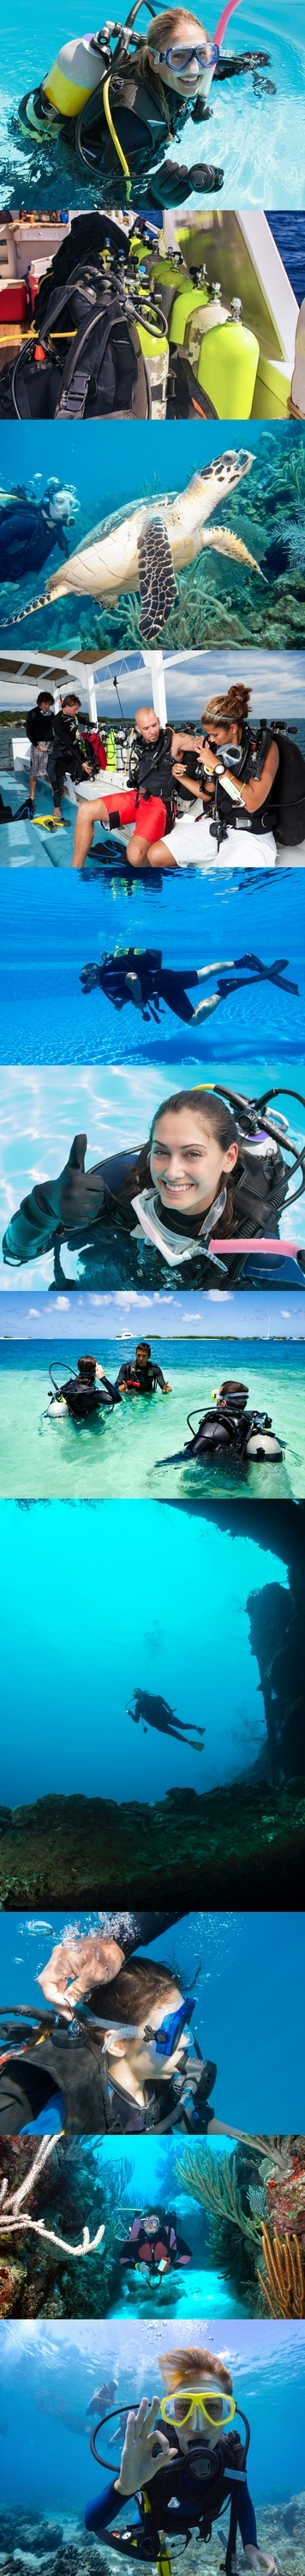 Get Scuba Certified in Ft Lauderdale